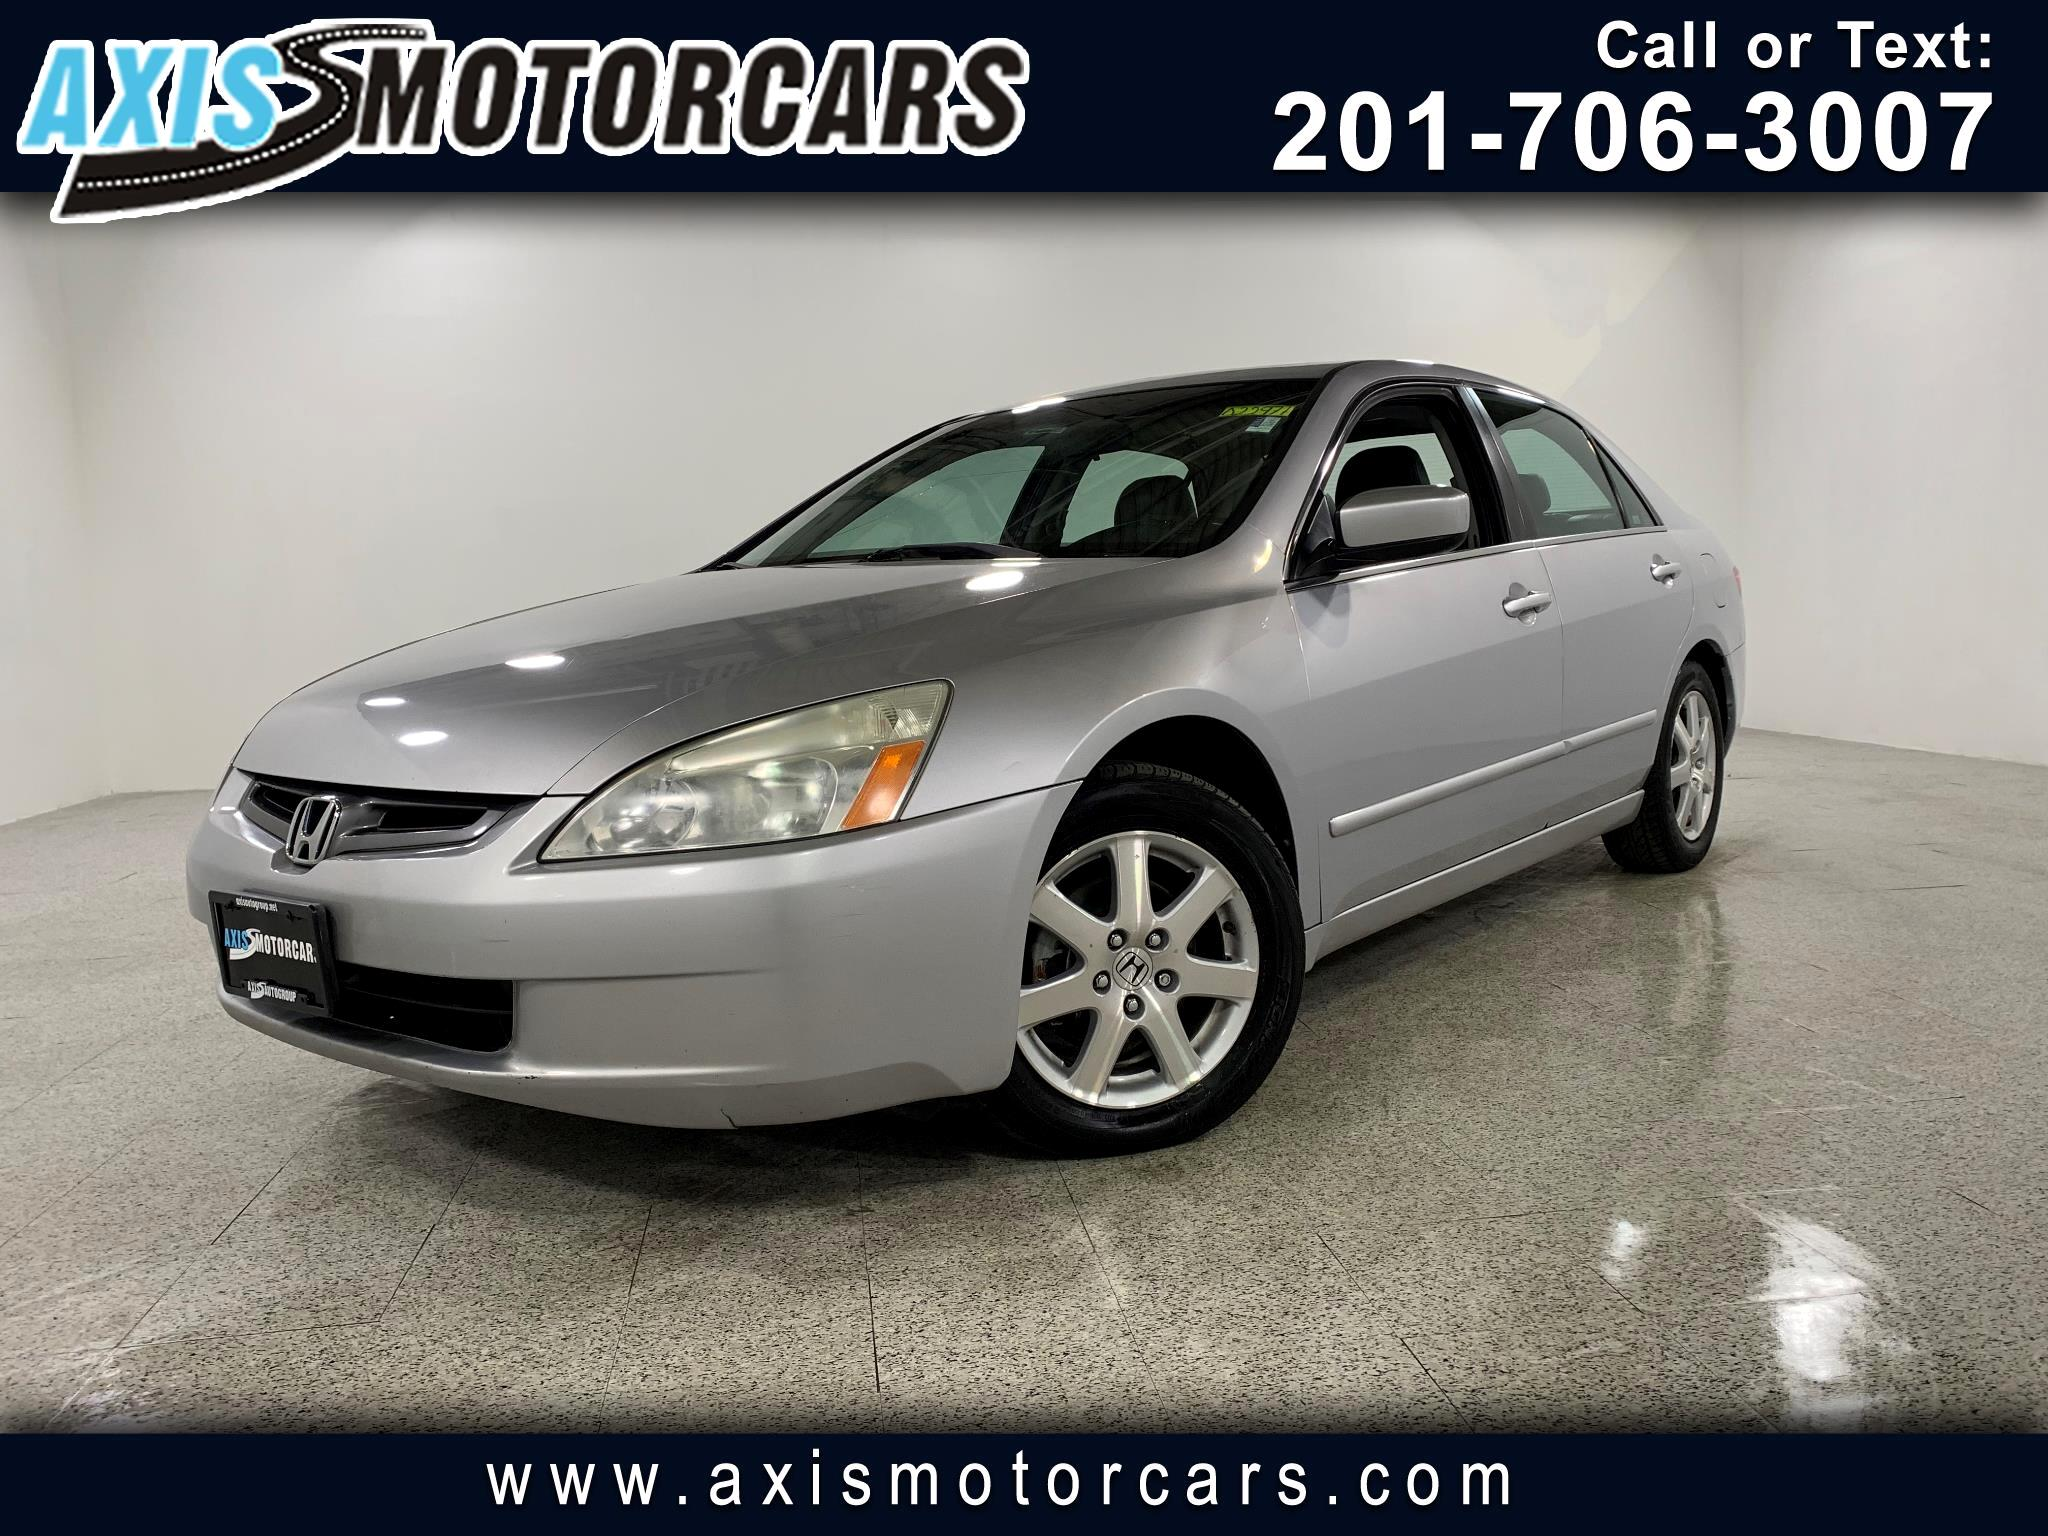 2005 Honda Accord EX-L V6 AT